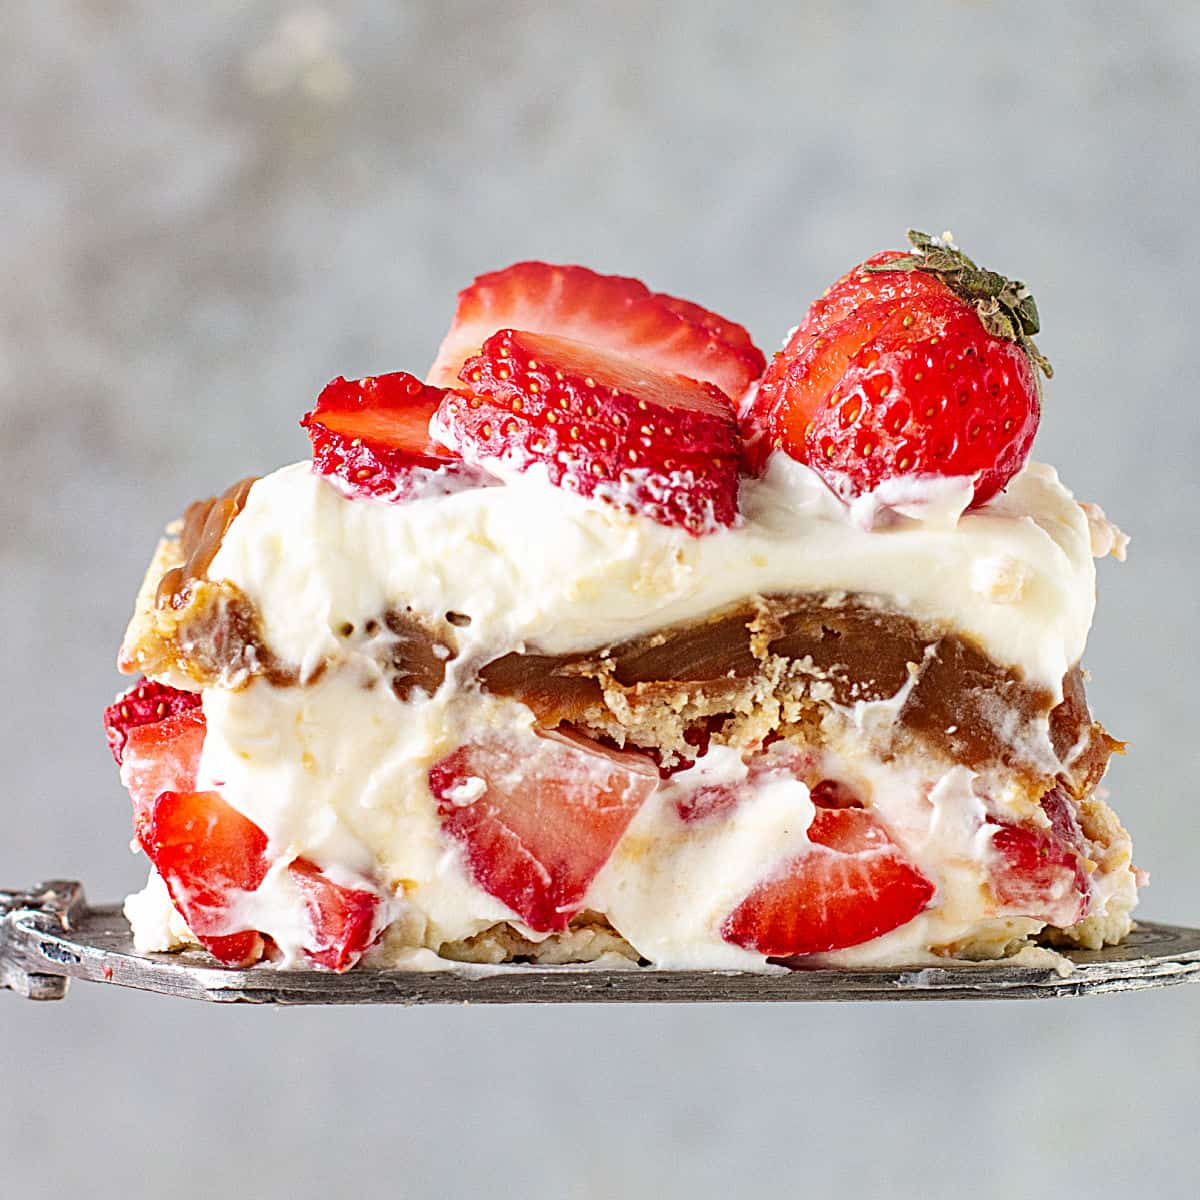 Close up of strawberry icebox cake serving on silver cake server, grey background